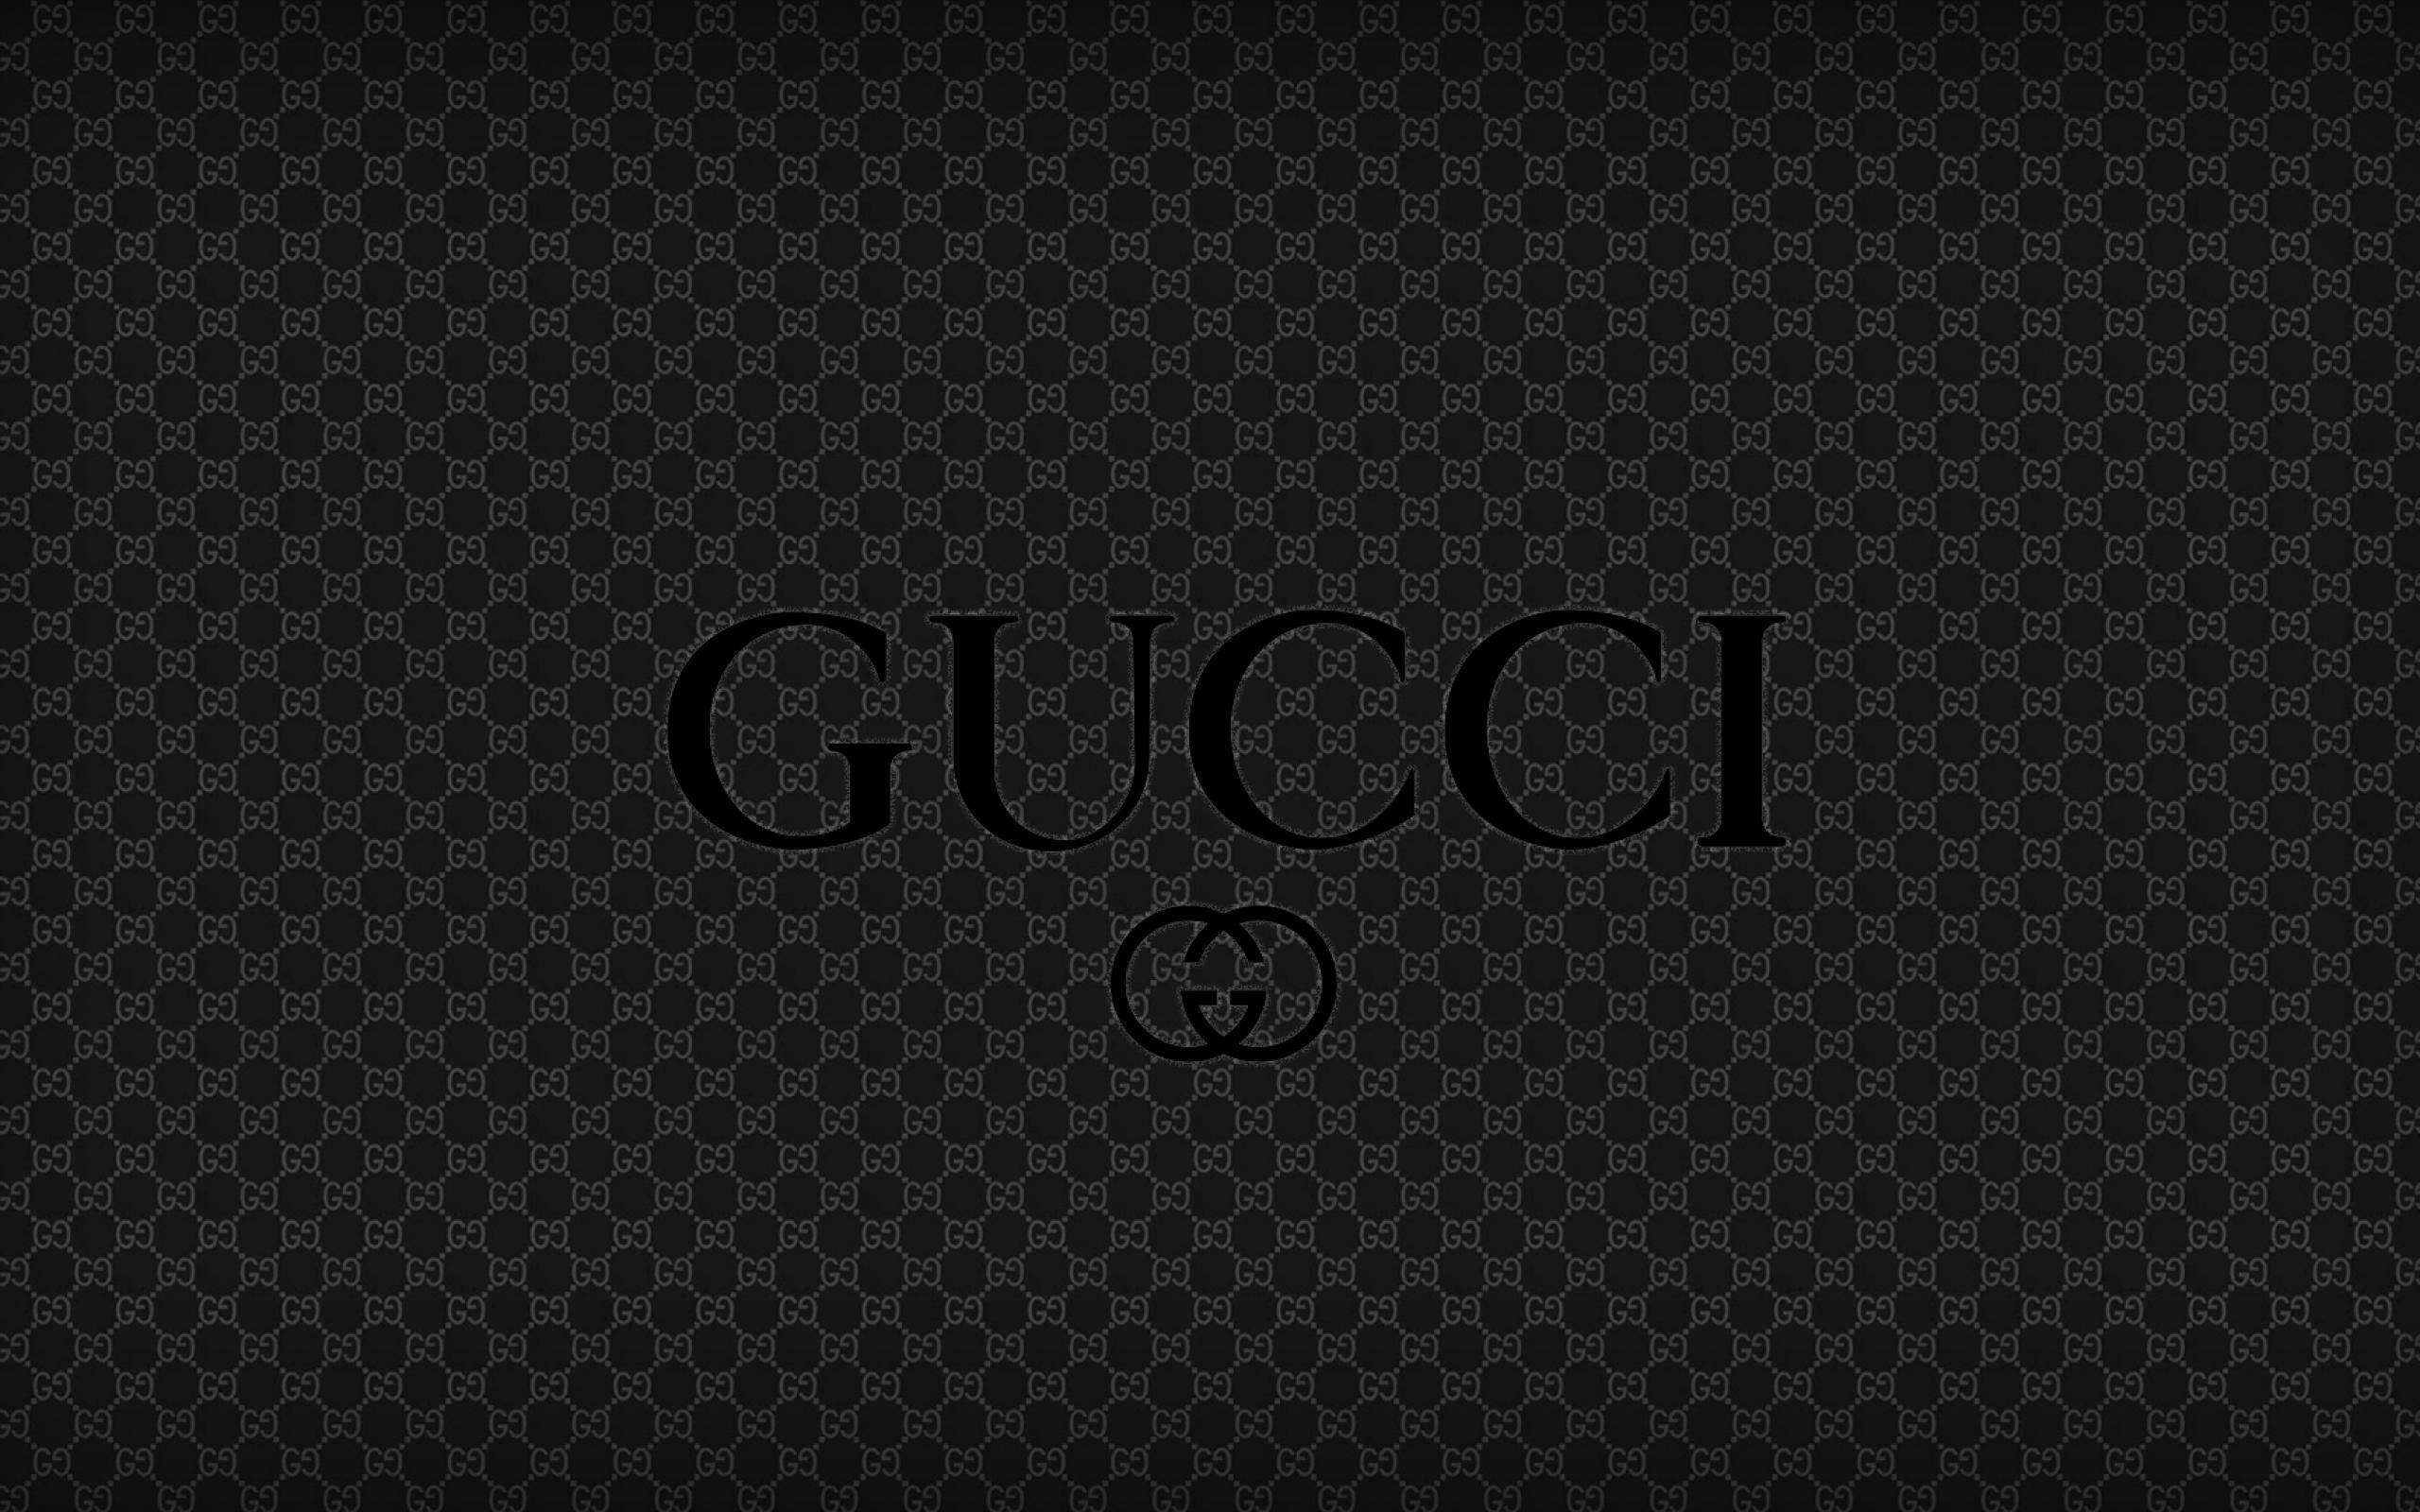 <b>Gucci</b> Skin Pattern iPhone 5 <b>Wallpaper</b> / iPod <b>Wallpaper HD</b> - Free ...